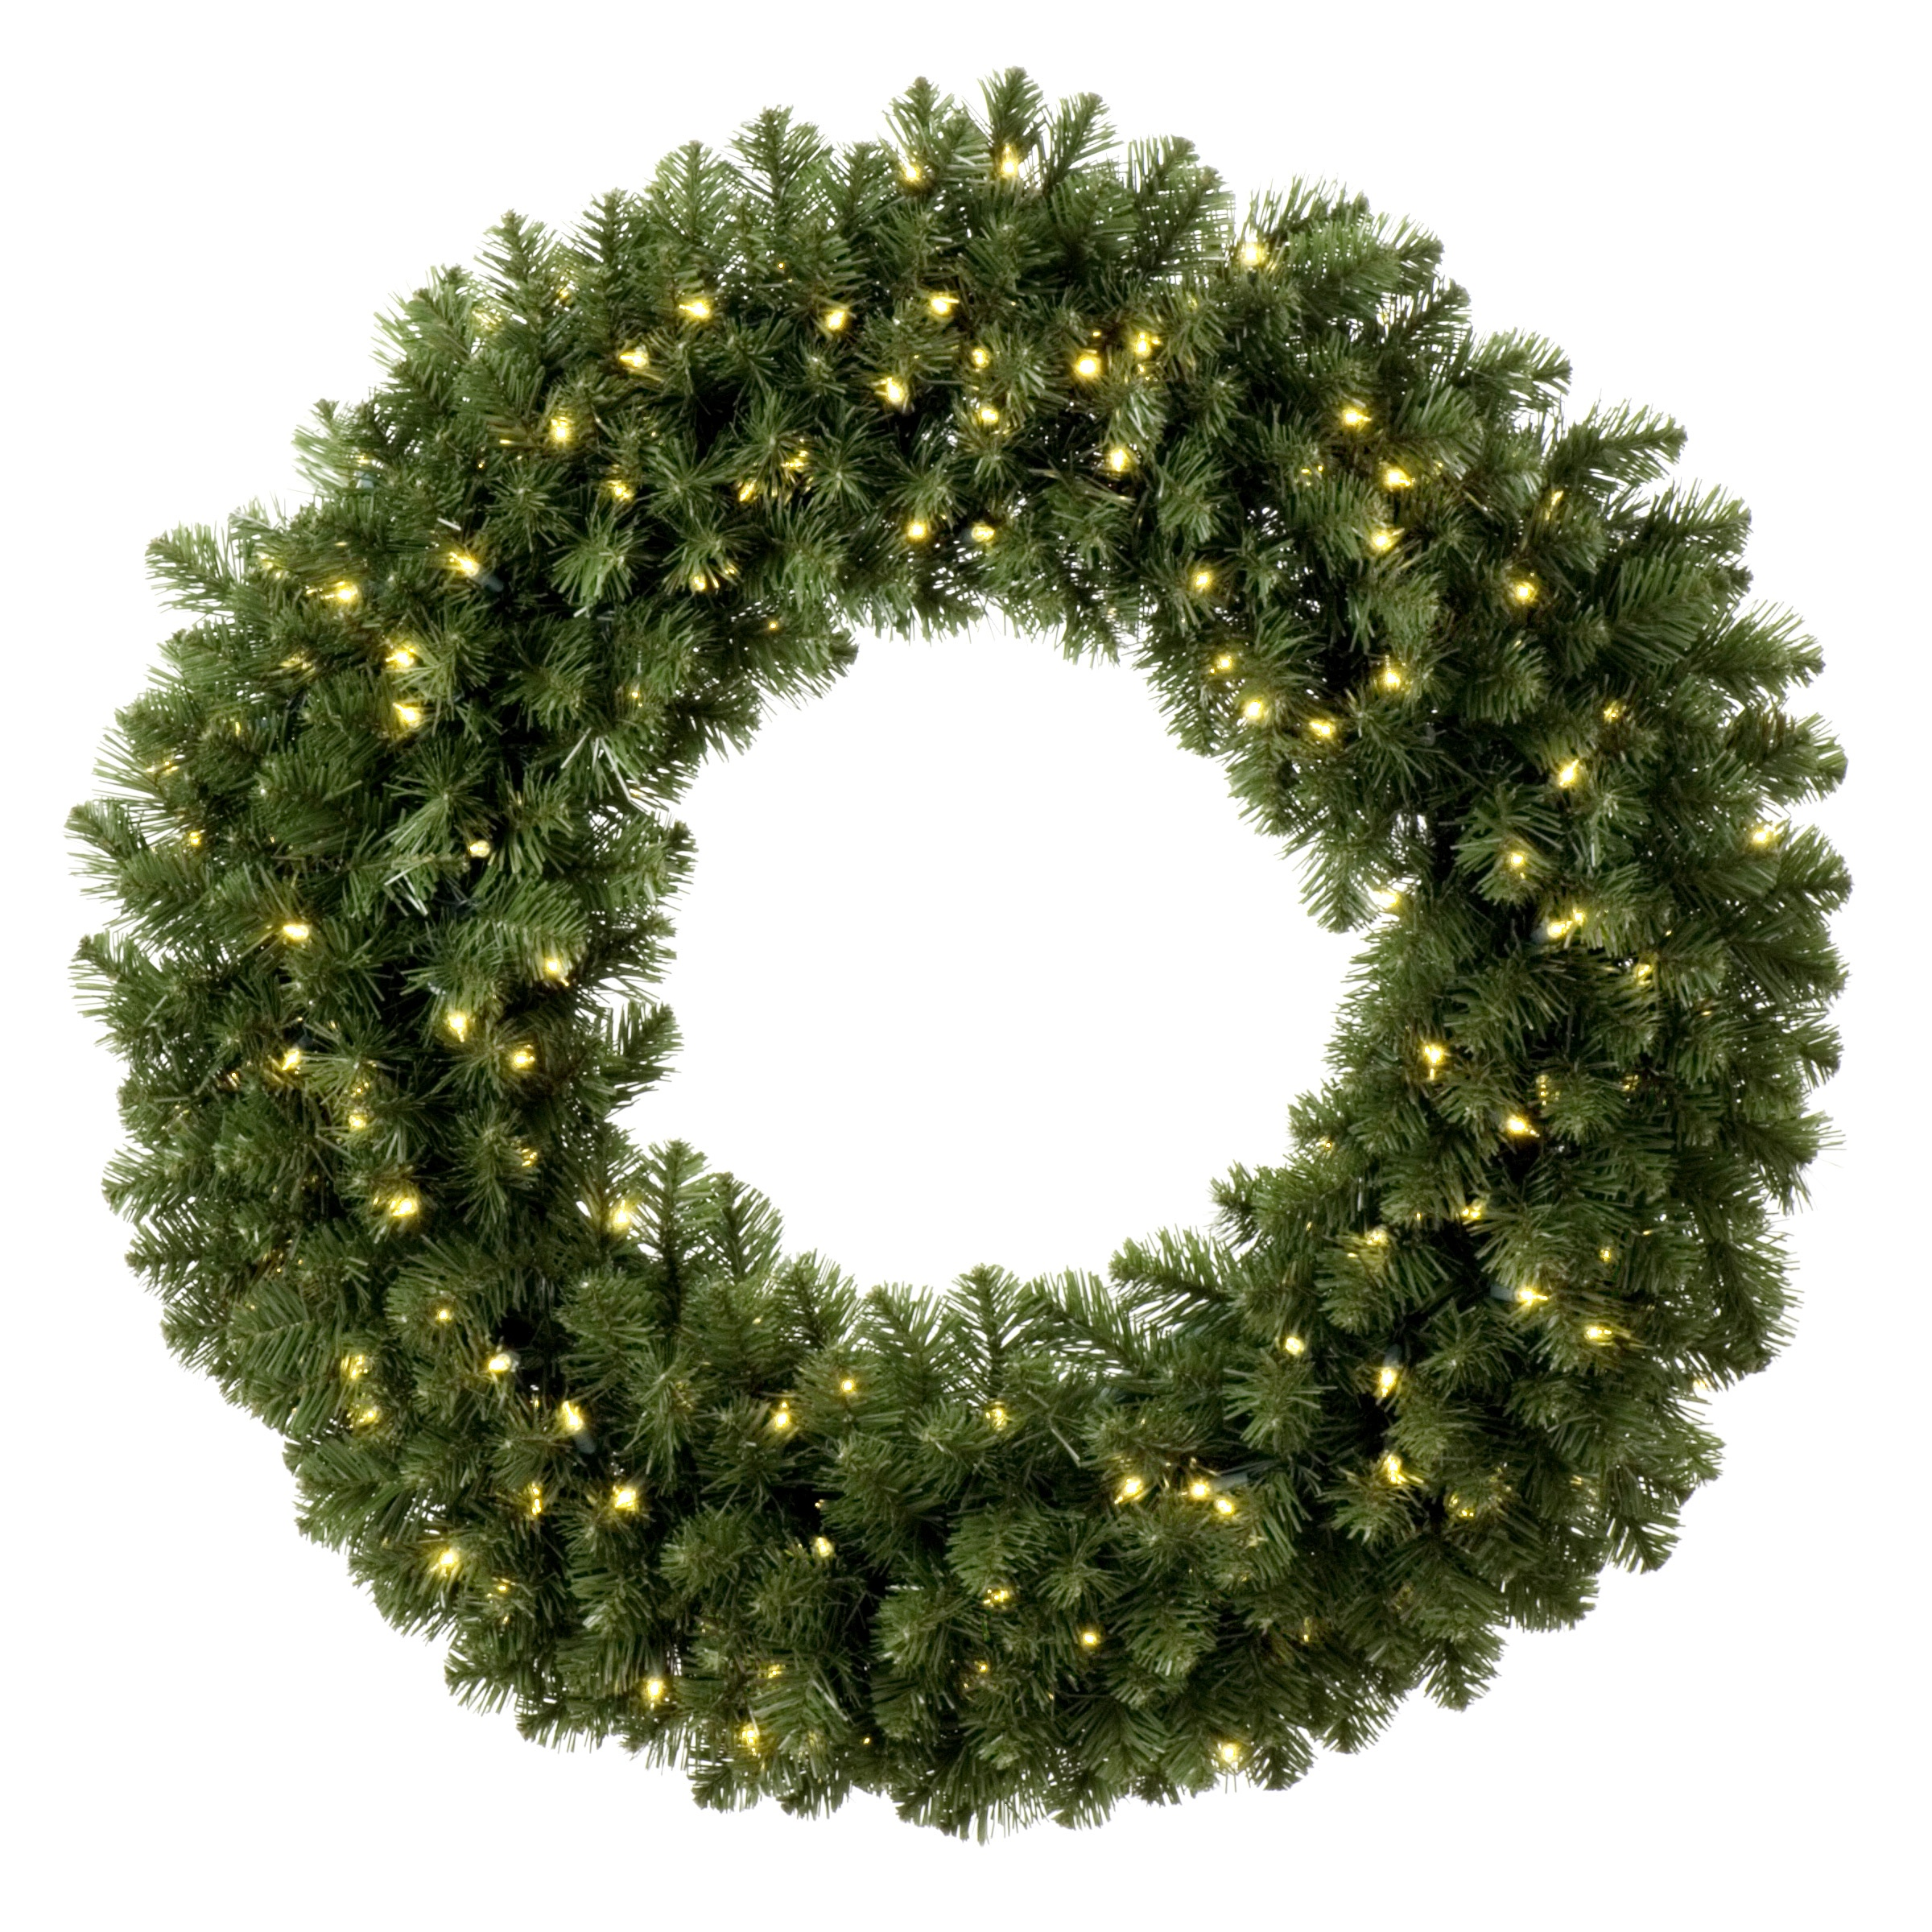 Artificial Christmas Wreaths - Sequoia Fir Prelit Commercial LED Christmas Wreath, Warm White Lights